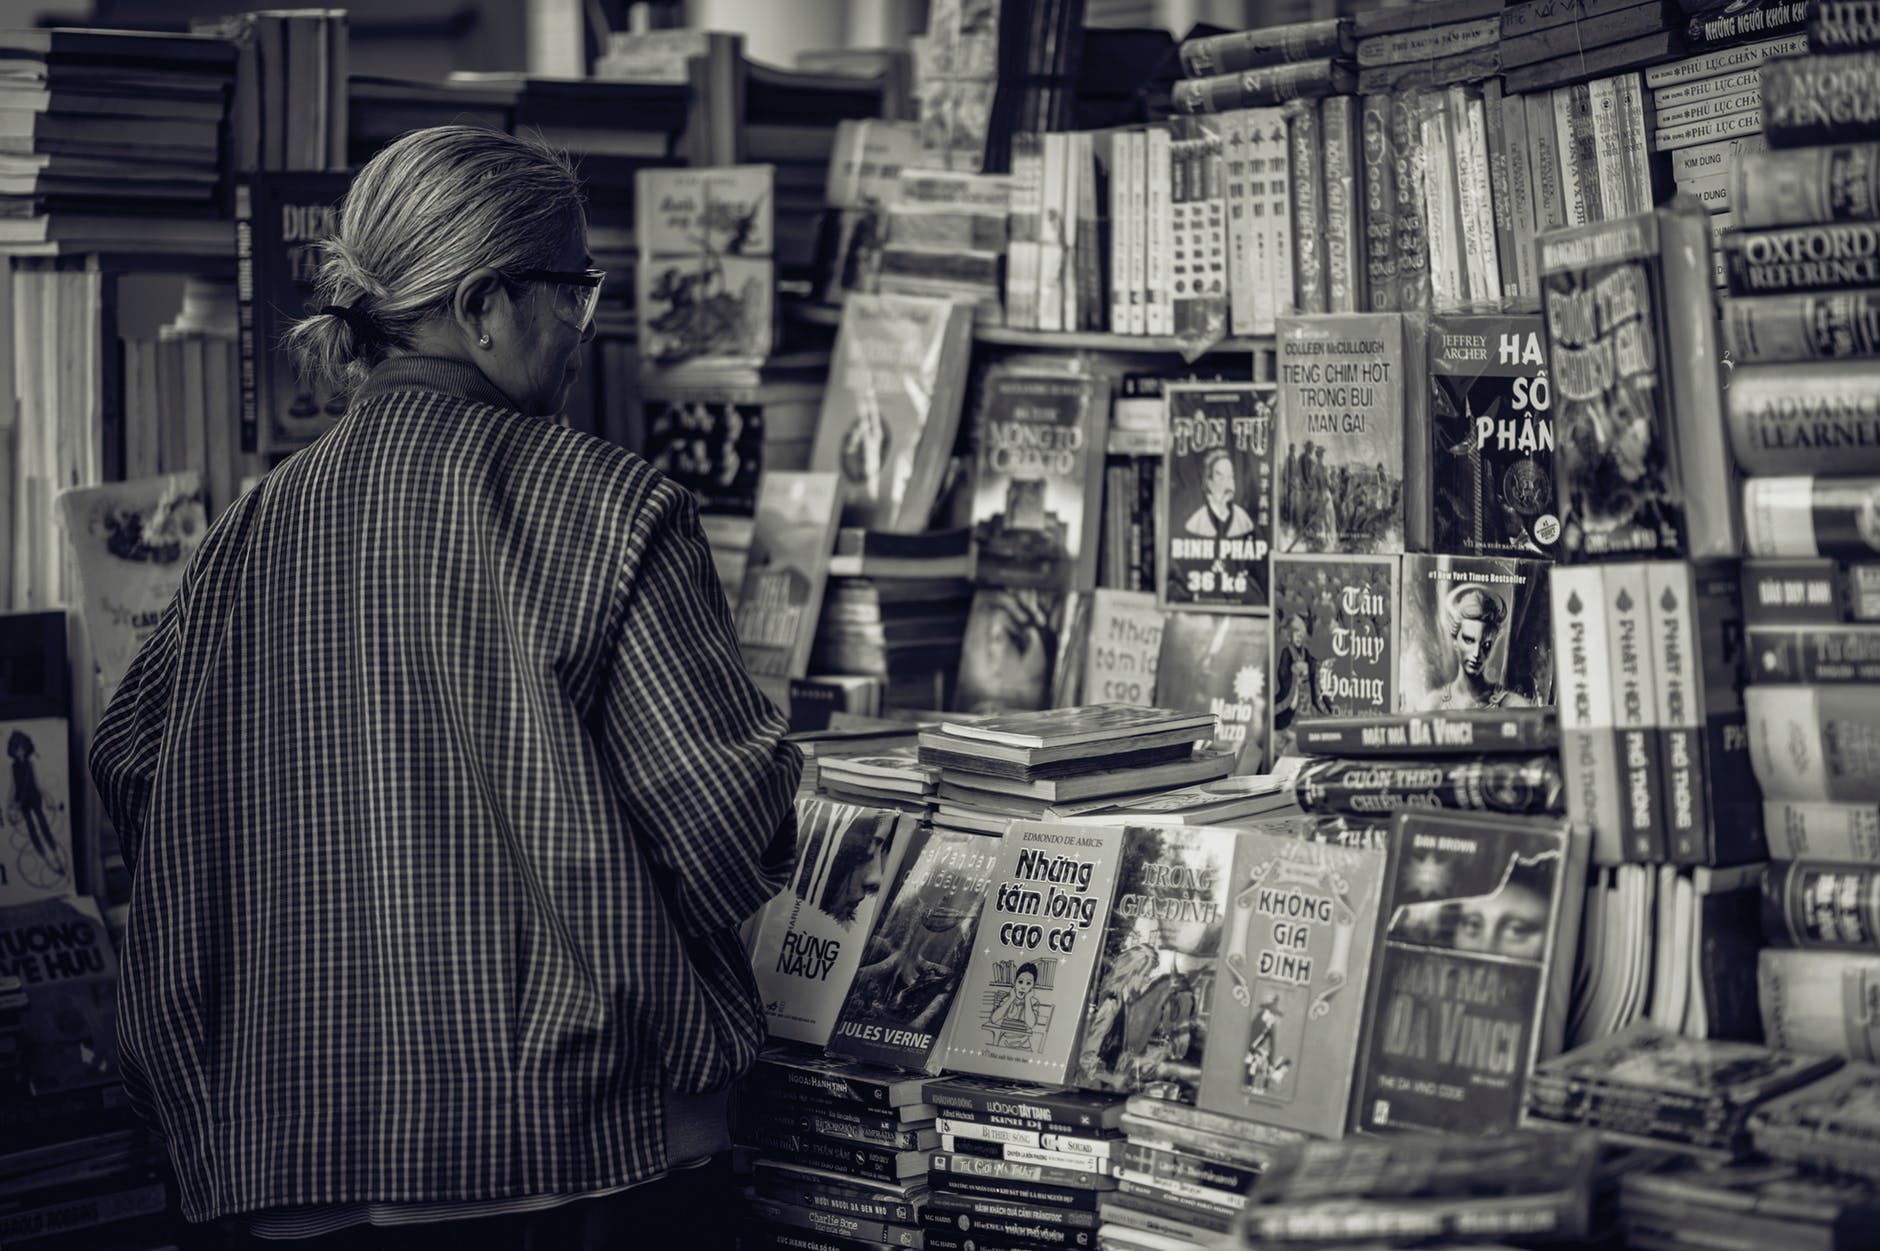 Grayscale photography of woman looking at the books